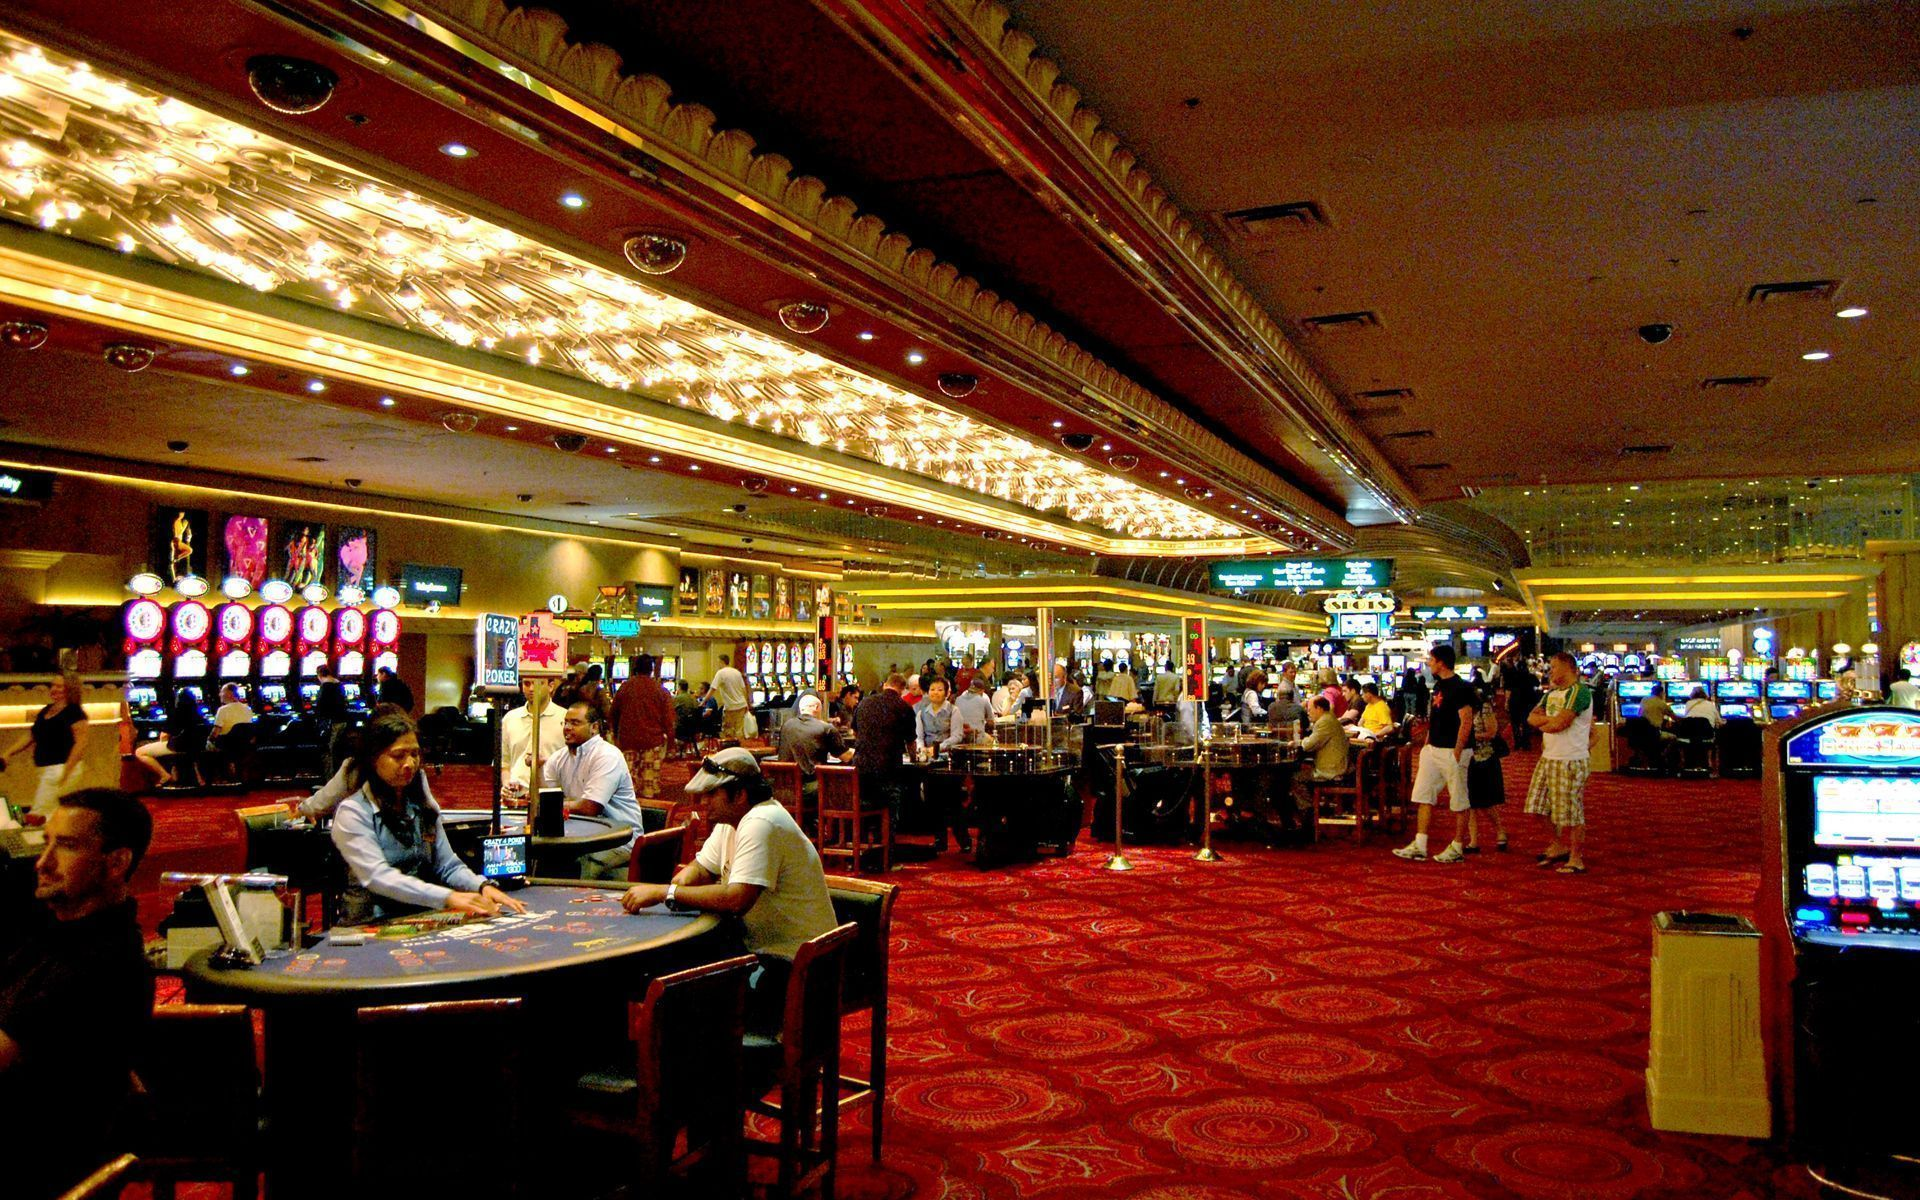 How To Start A Enterprise With Only Online Gambling